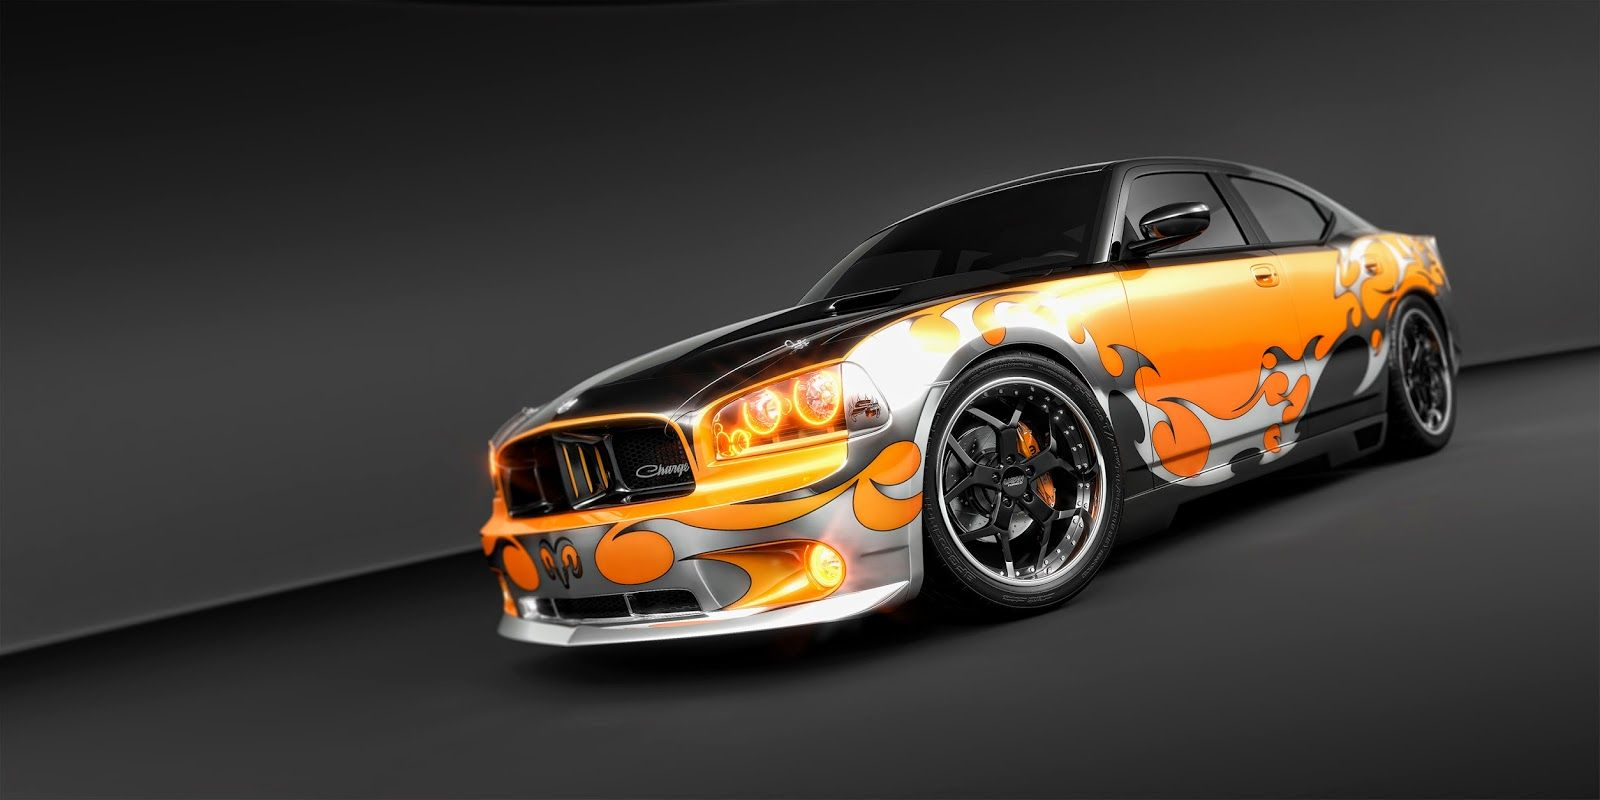 Car Paint Design Ideas view photo gallery Cars